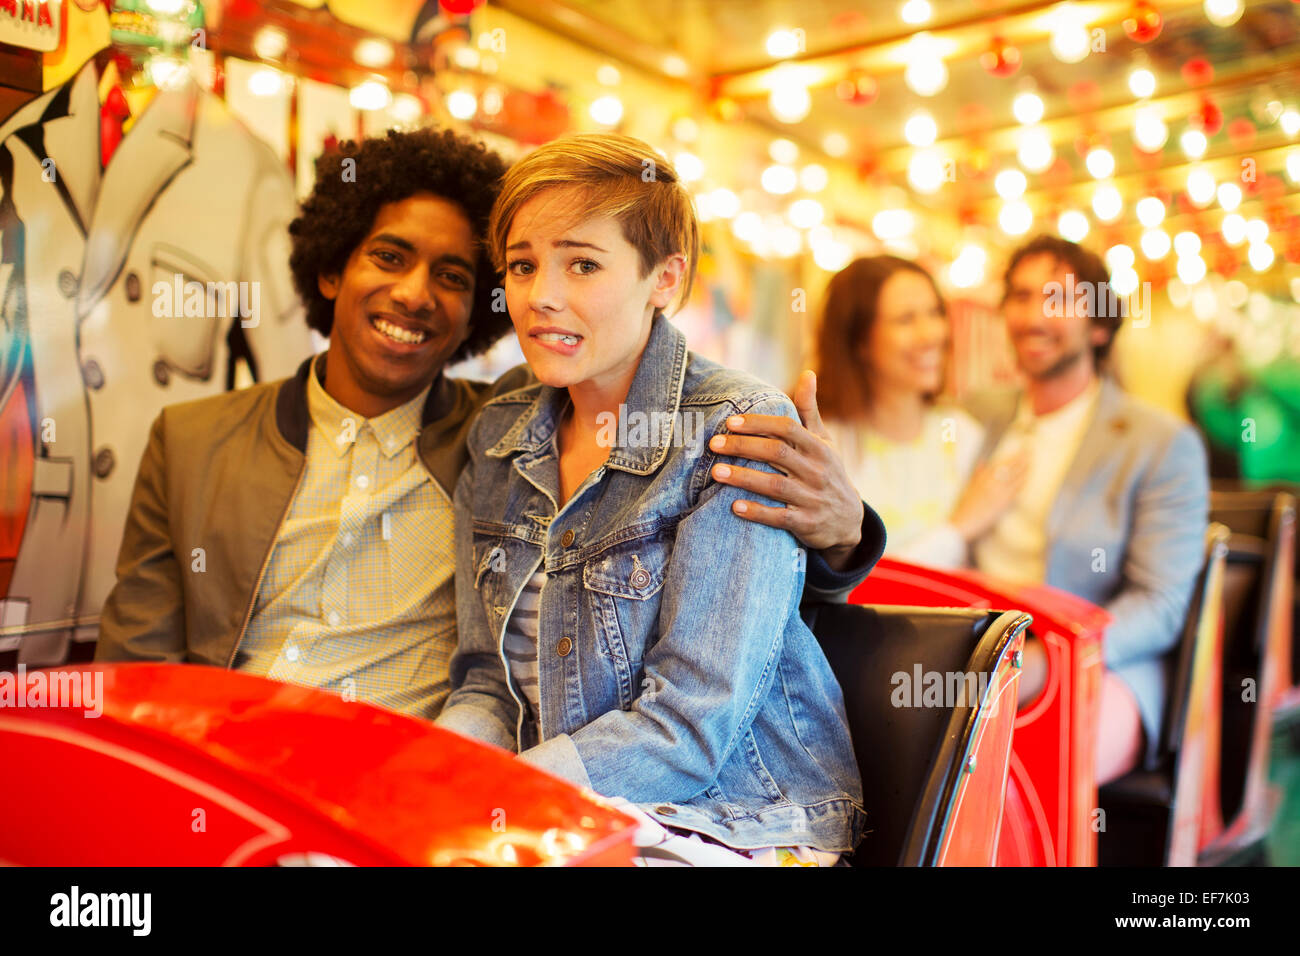 Man embracing scared girlfriend on ghost train - Stock Image